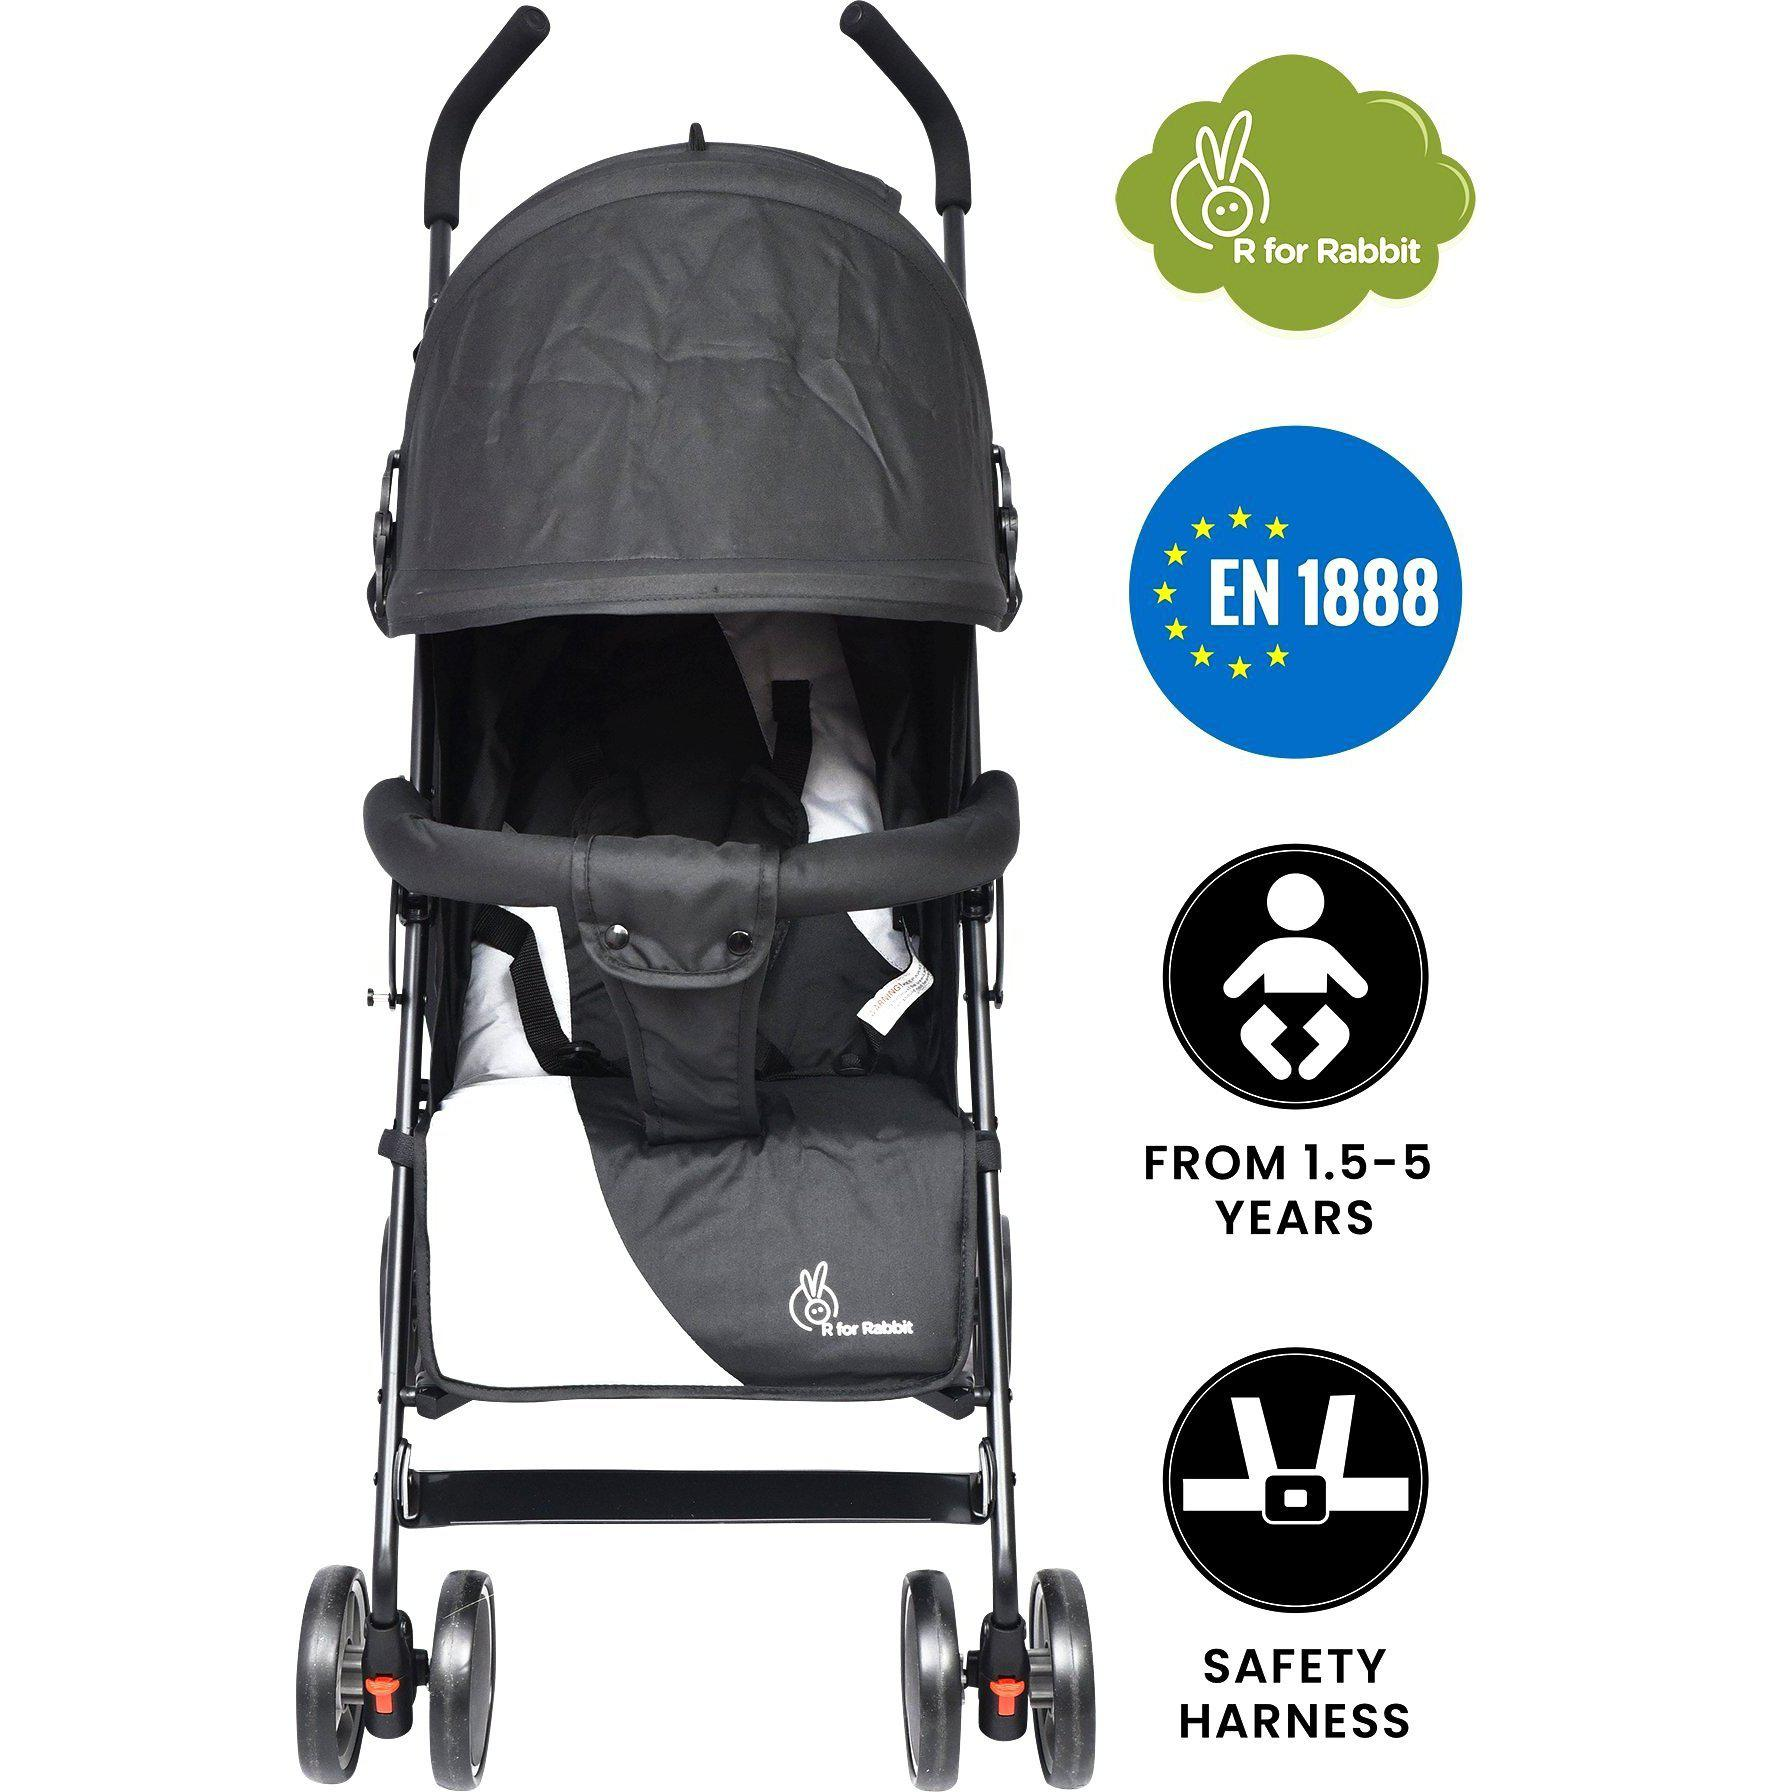 R for Rabbit Twinkle Twinkle Compact Folding Baby Stroller and Pram for Kids of 0 to 3 years.